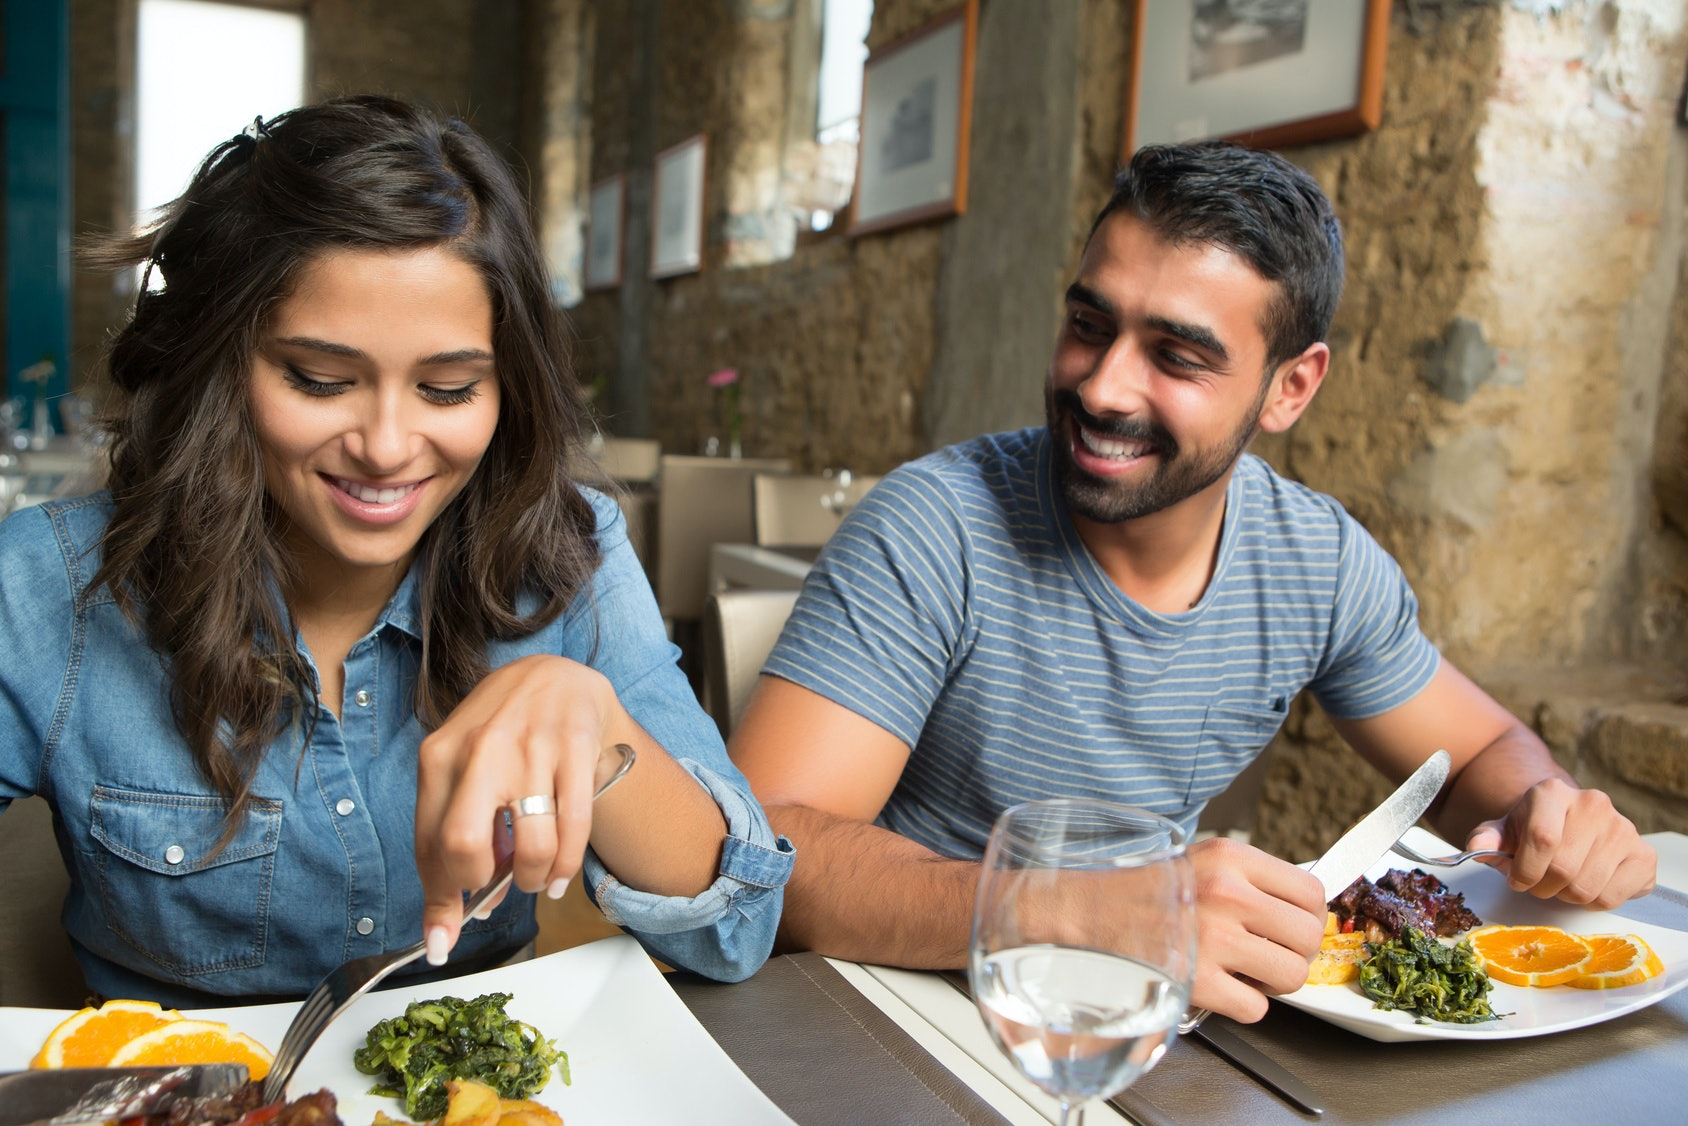 What men expect on a first date